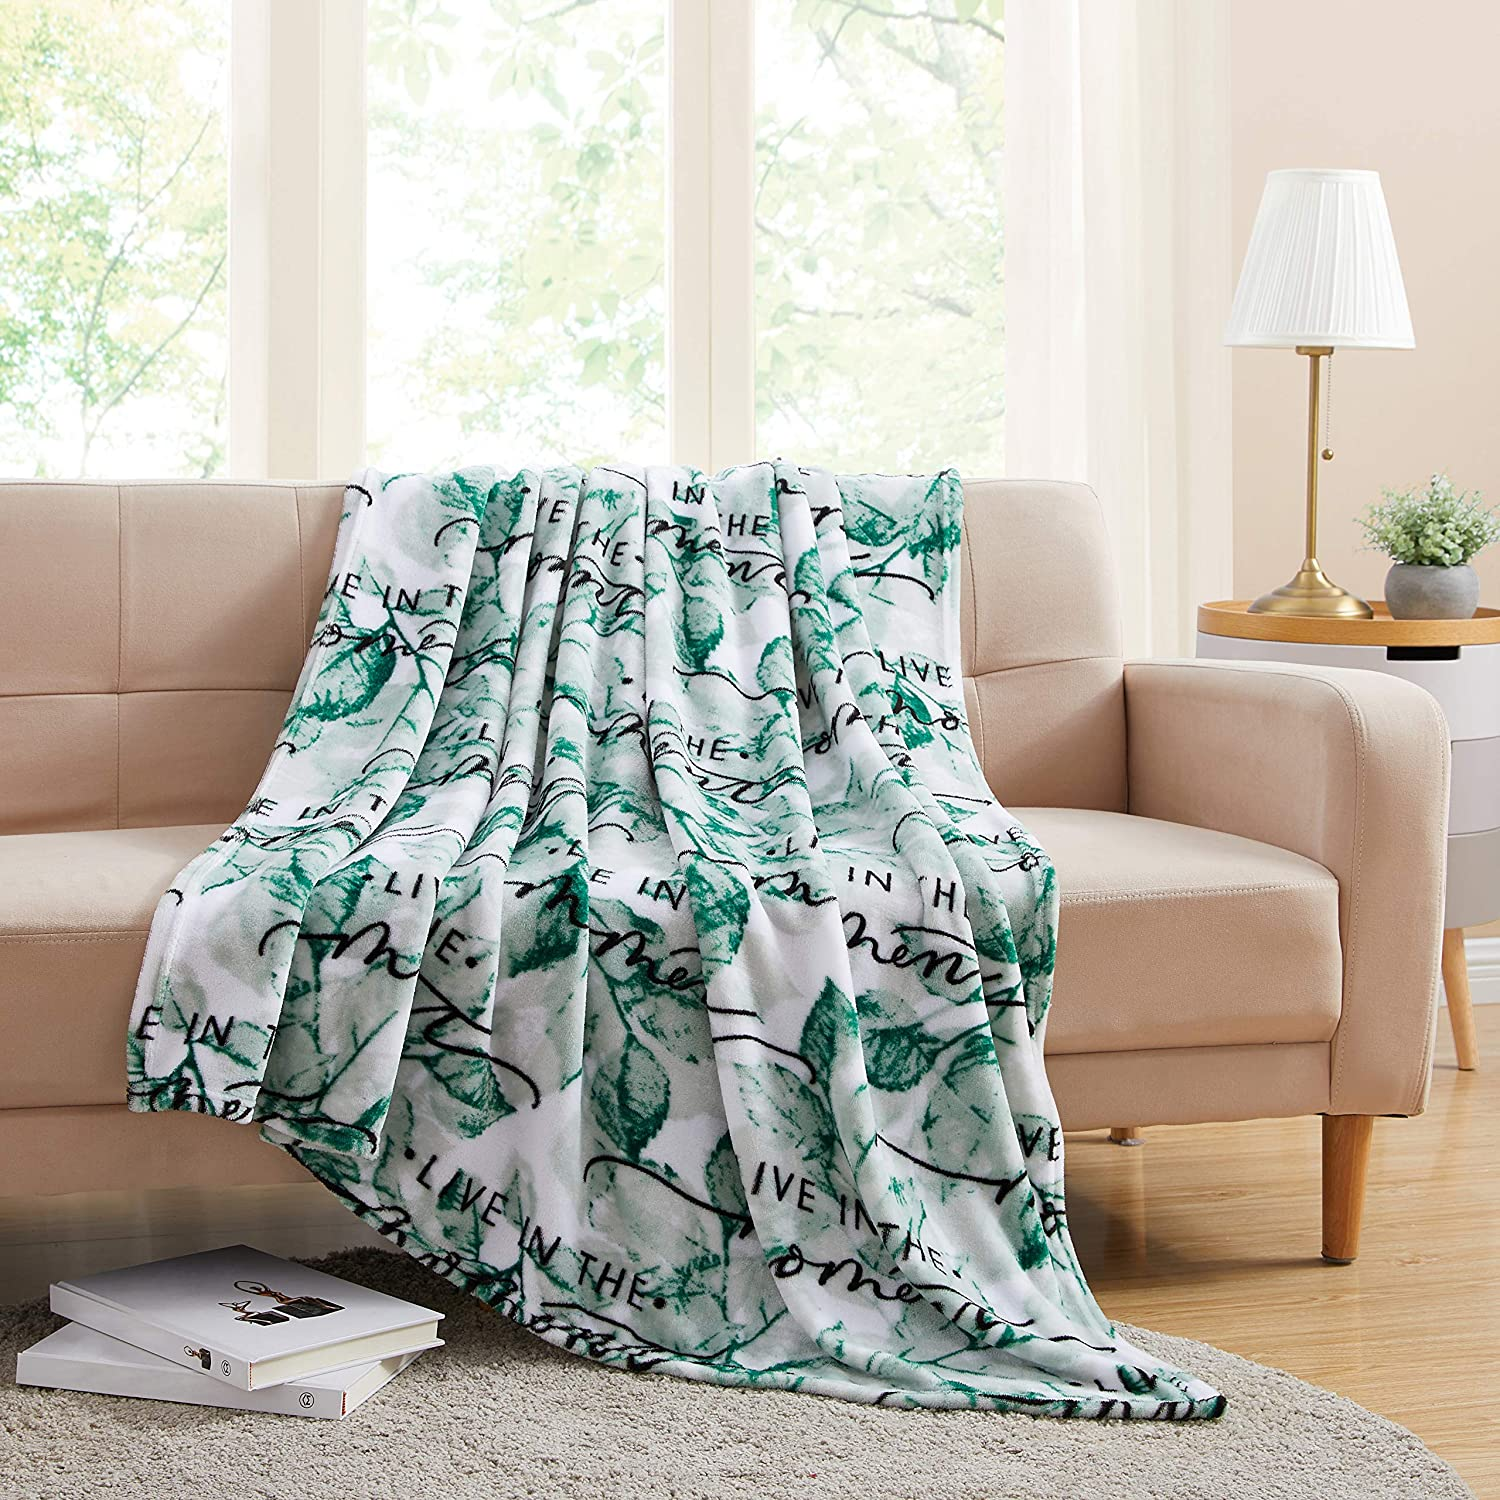 Morgan Home Fashions Velvet Plush Throw Blanket- Soft, Warm and Cozy, Lightweight for All Year Round Use 50 x 60/50 x 70 Inches Soft Velvet Plush in Many Styles (Live in The Moment)